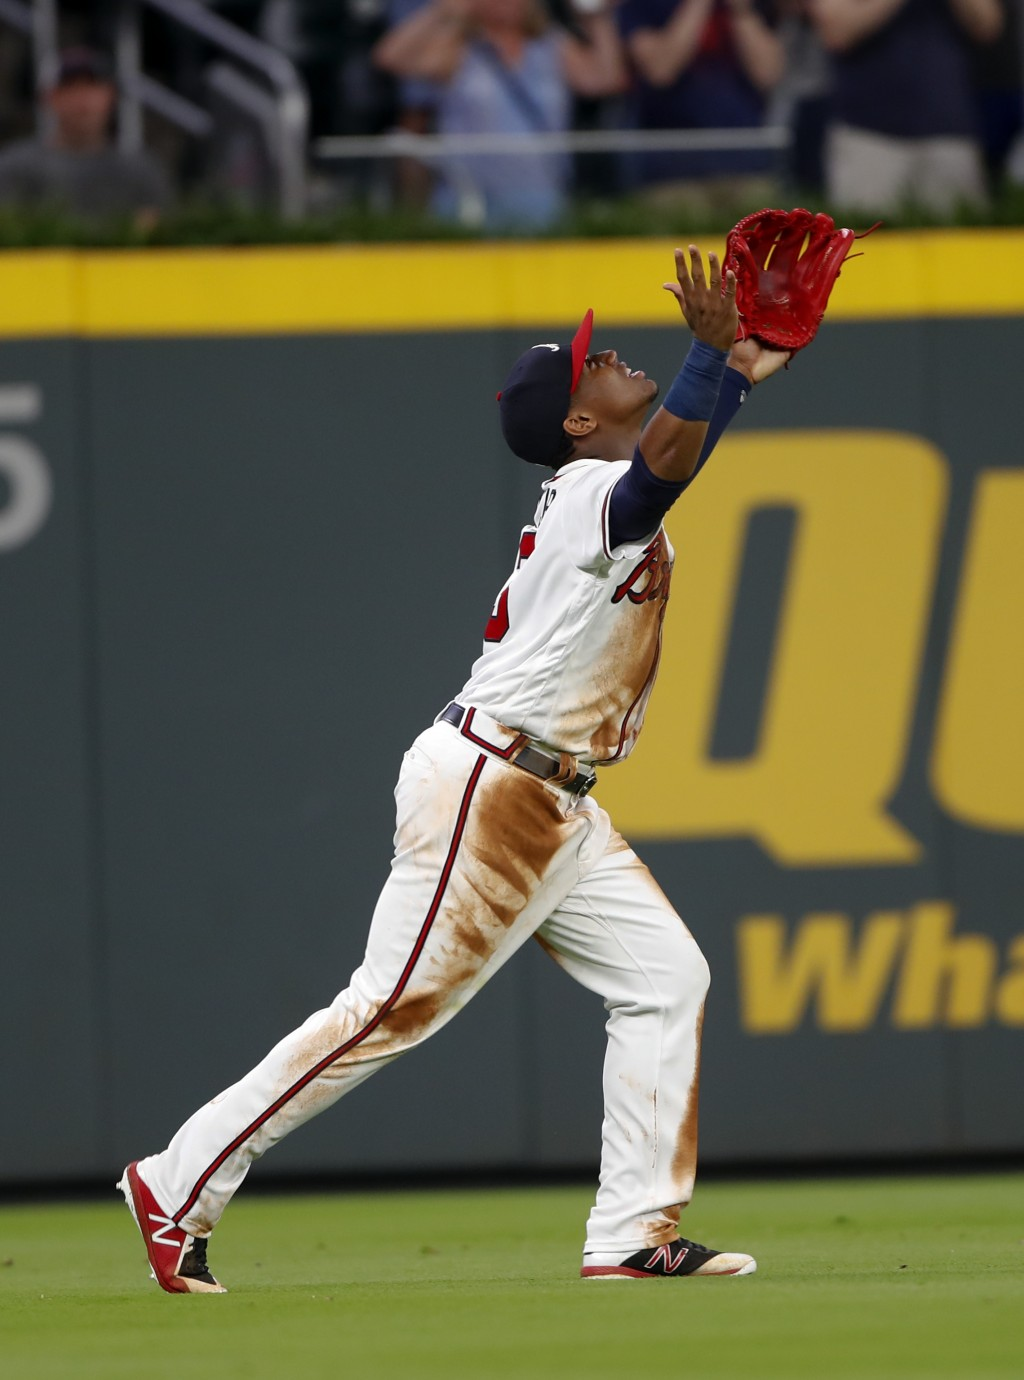 Atlanta Braves left fielder Ronald Acuna Jr. celebrates at the end of the team's baseball game against the Chicago Cubs on Wednesday, May 16, 2018, in